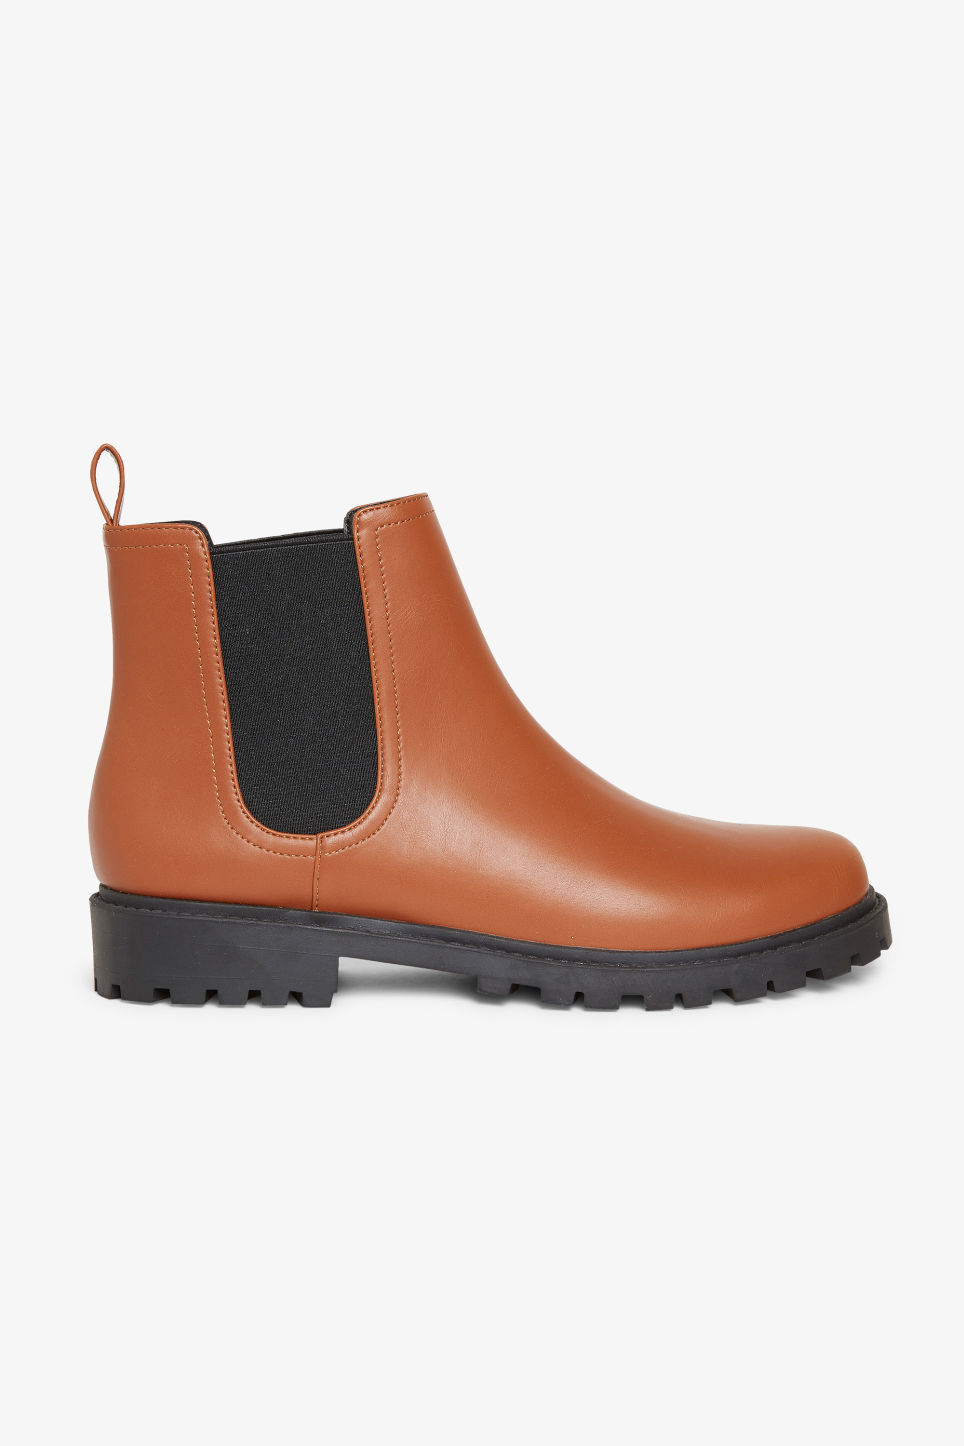 Detailed image of Monki chunky chelsea boots in beige